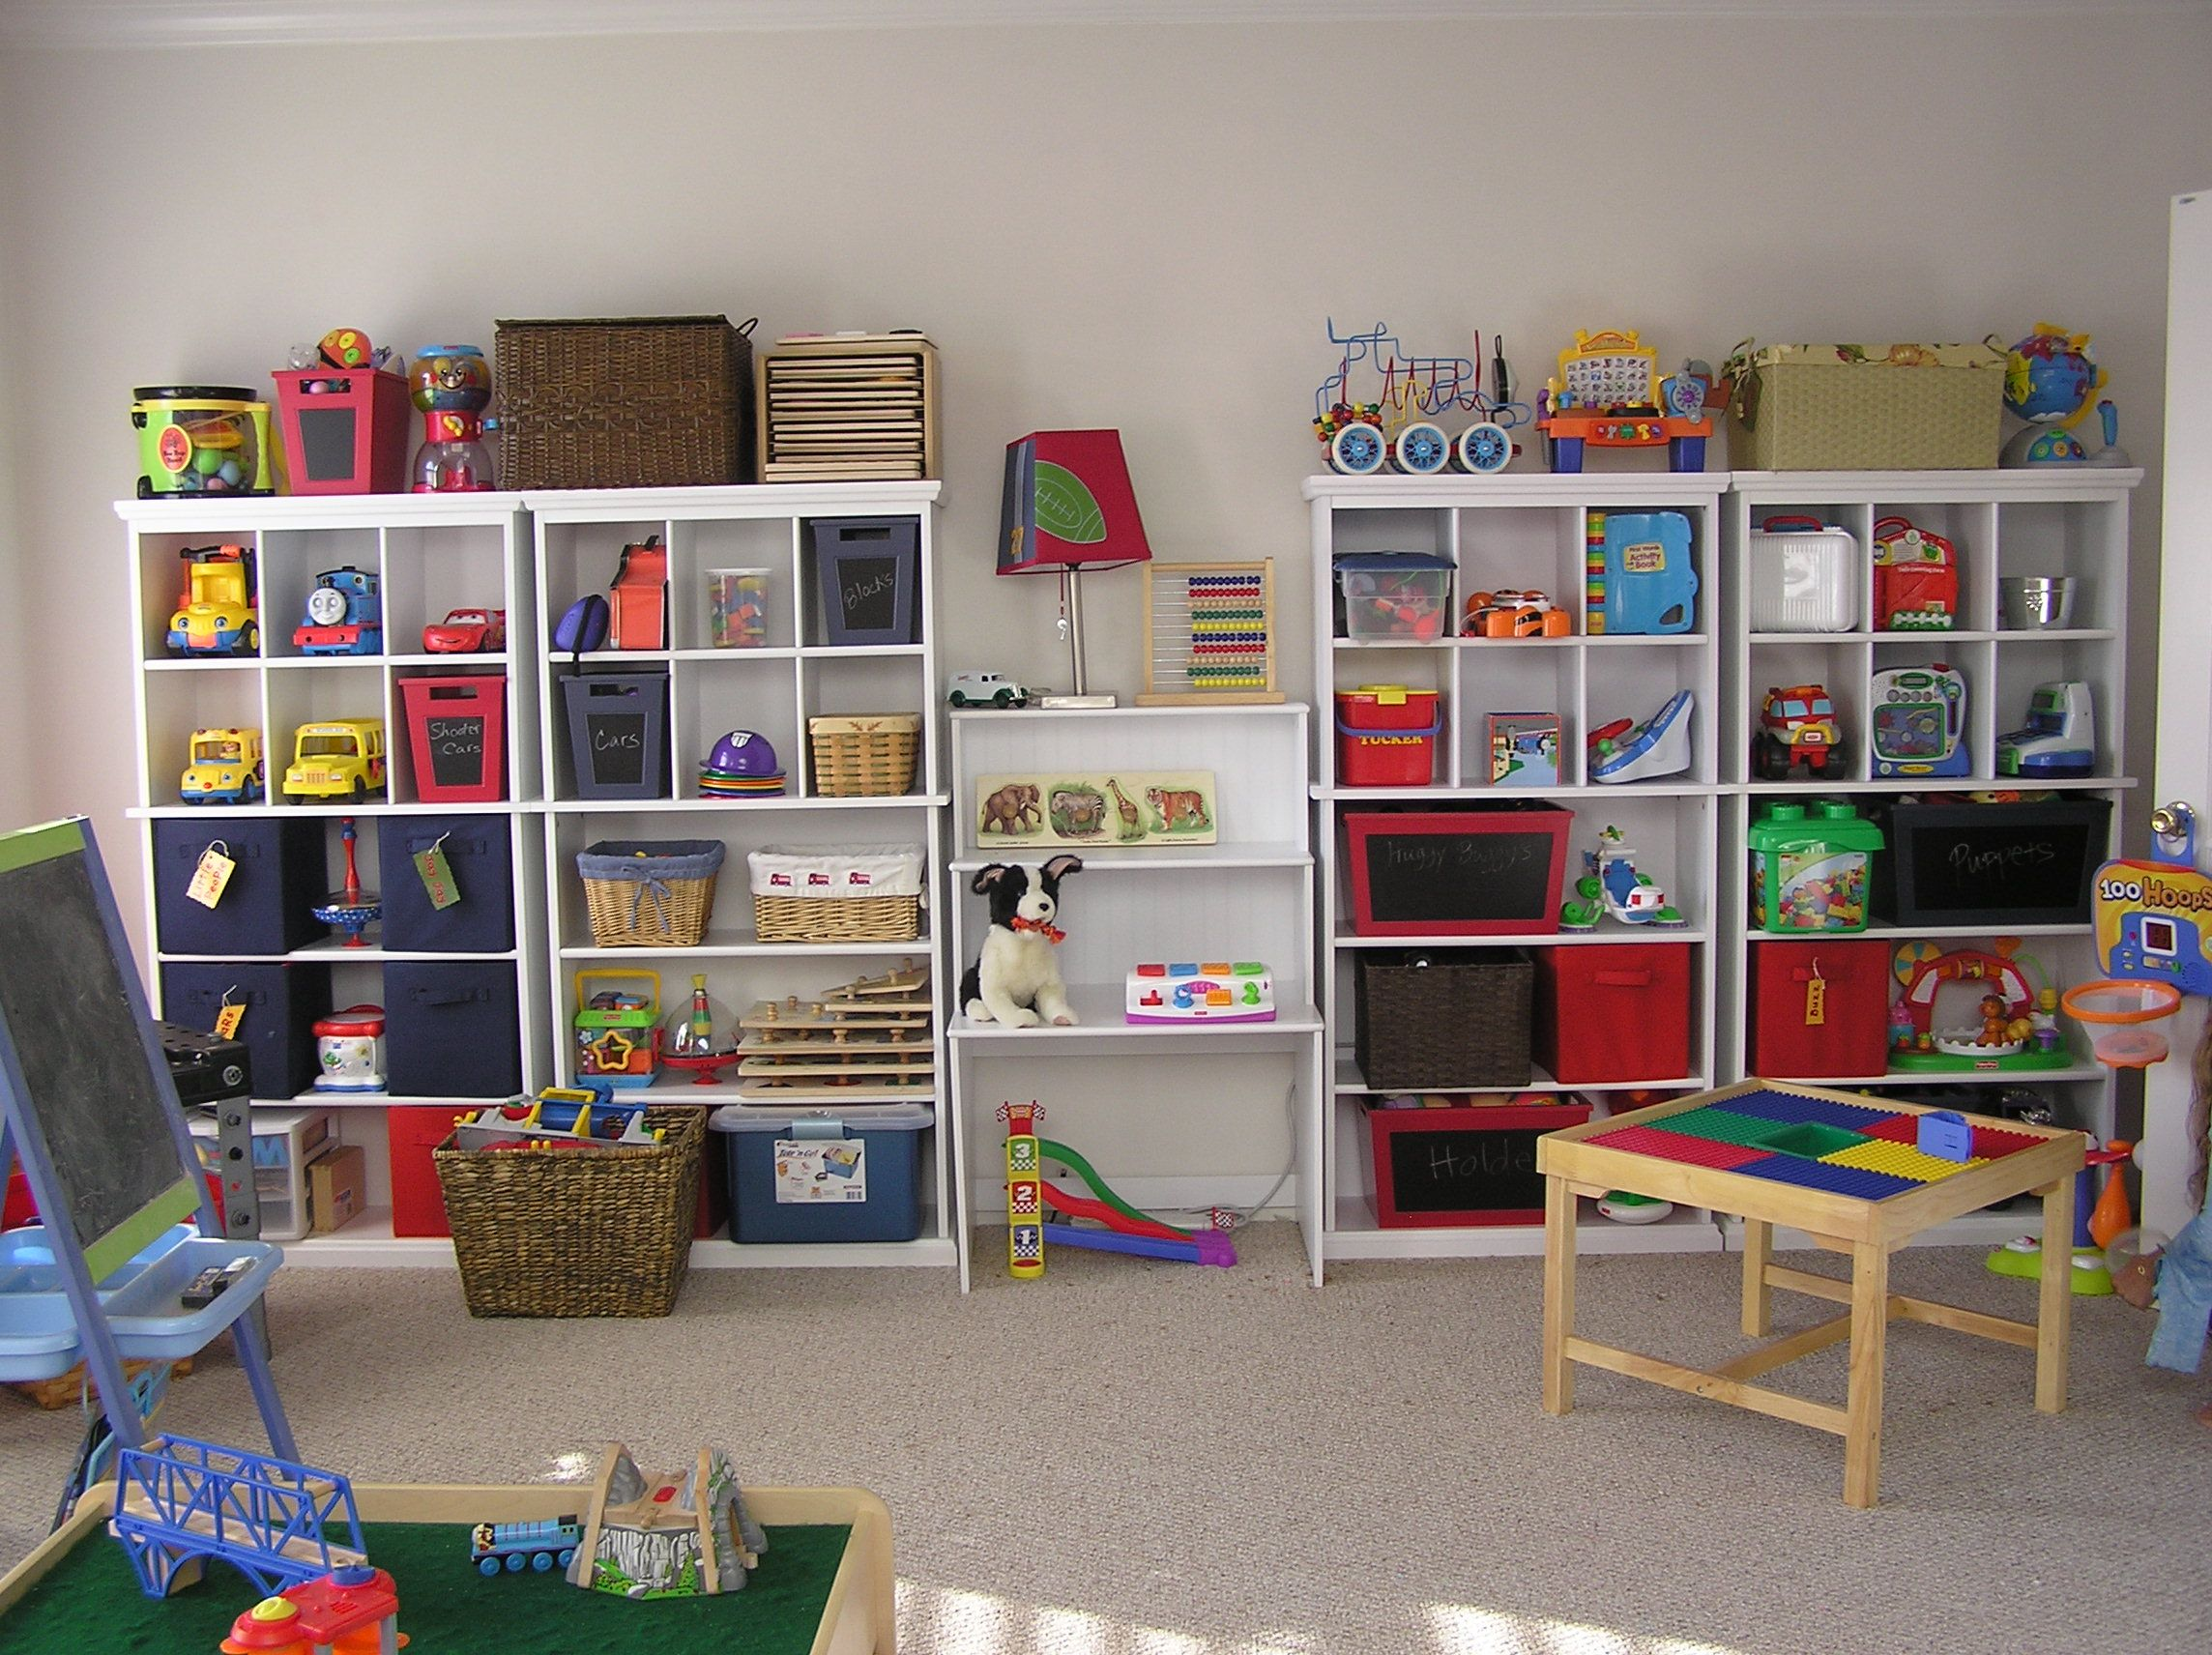 Kids Room Organization Ideas | Organizing Kids ToysAmy Volk   Live Better